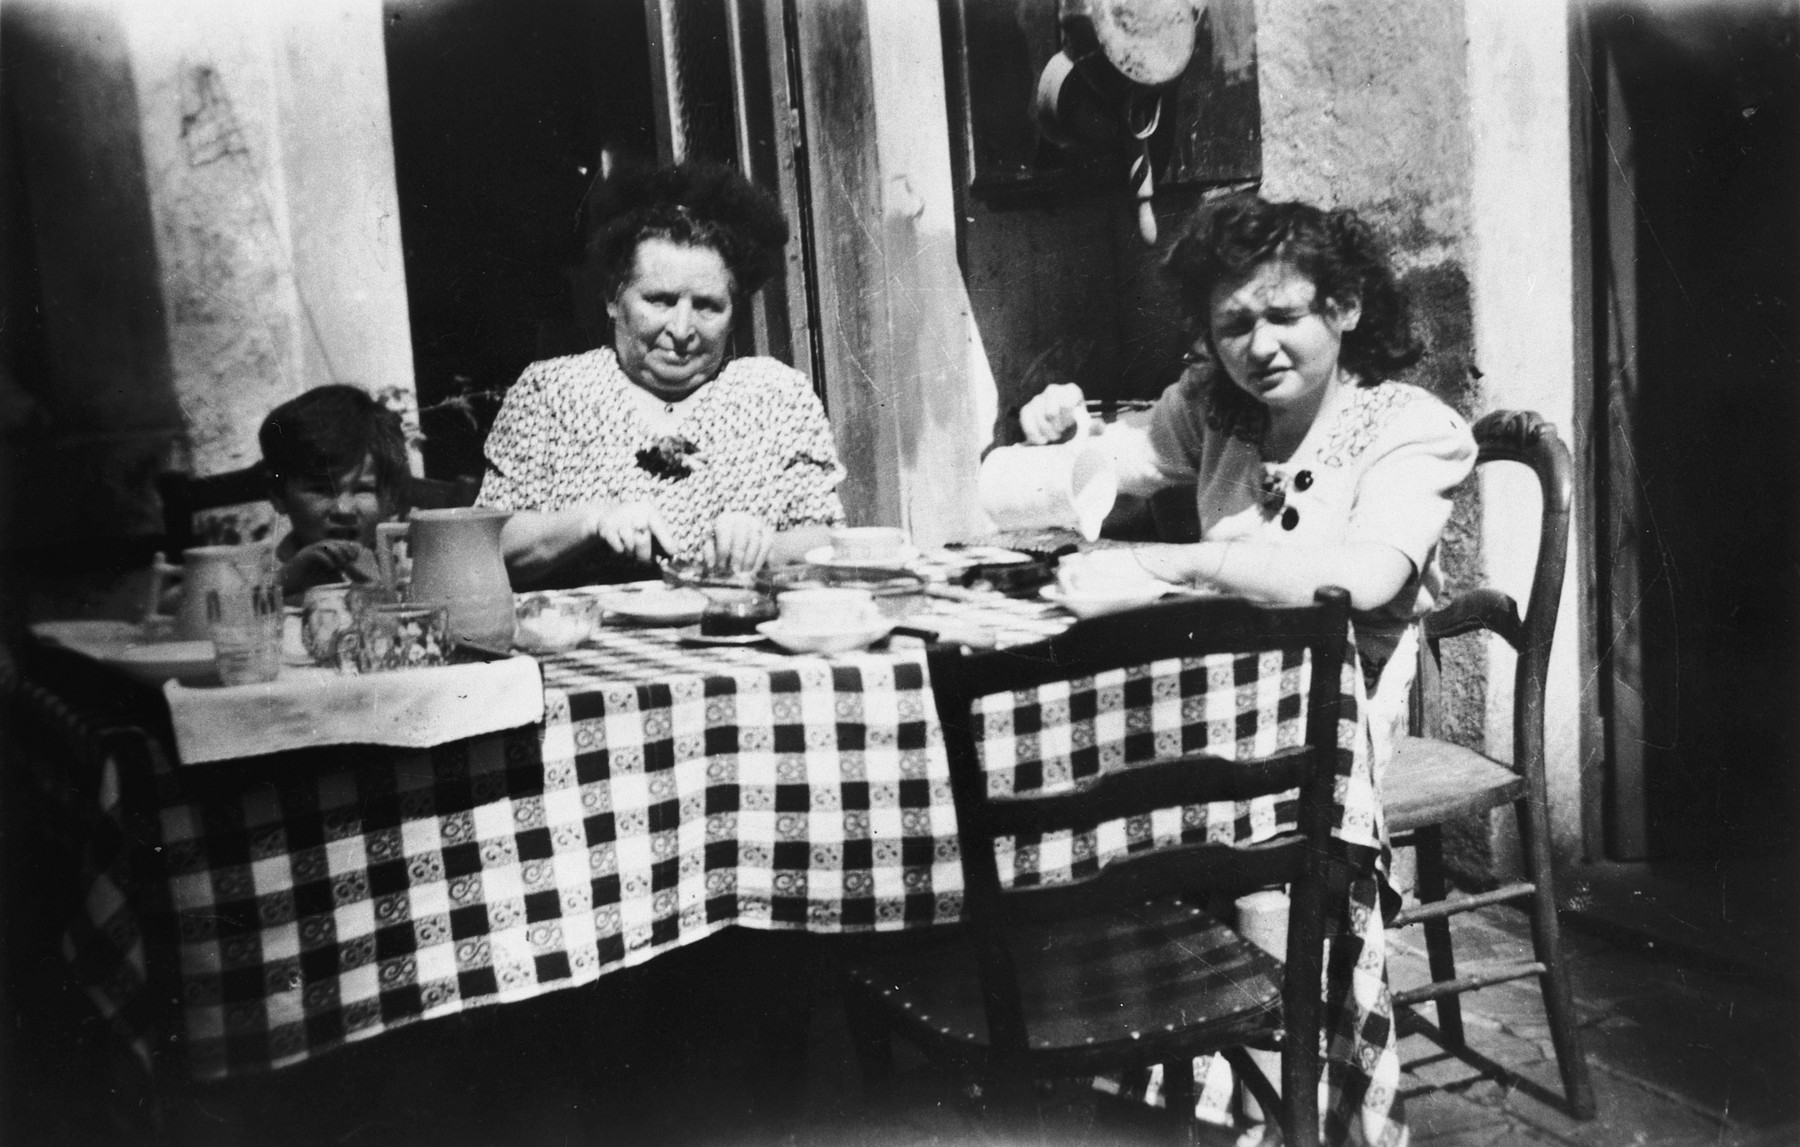 Hena Kohn and her younger cousin Marcel Shumiliver sit down to eat with their Belgian rescuer Alix Robert while in hiding.